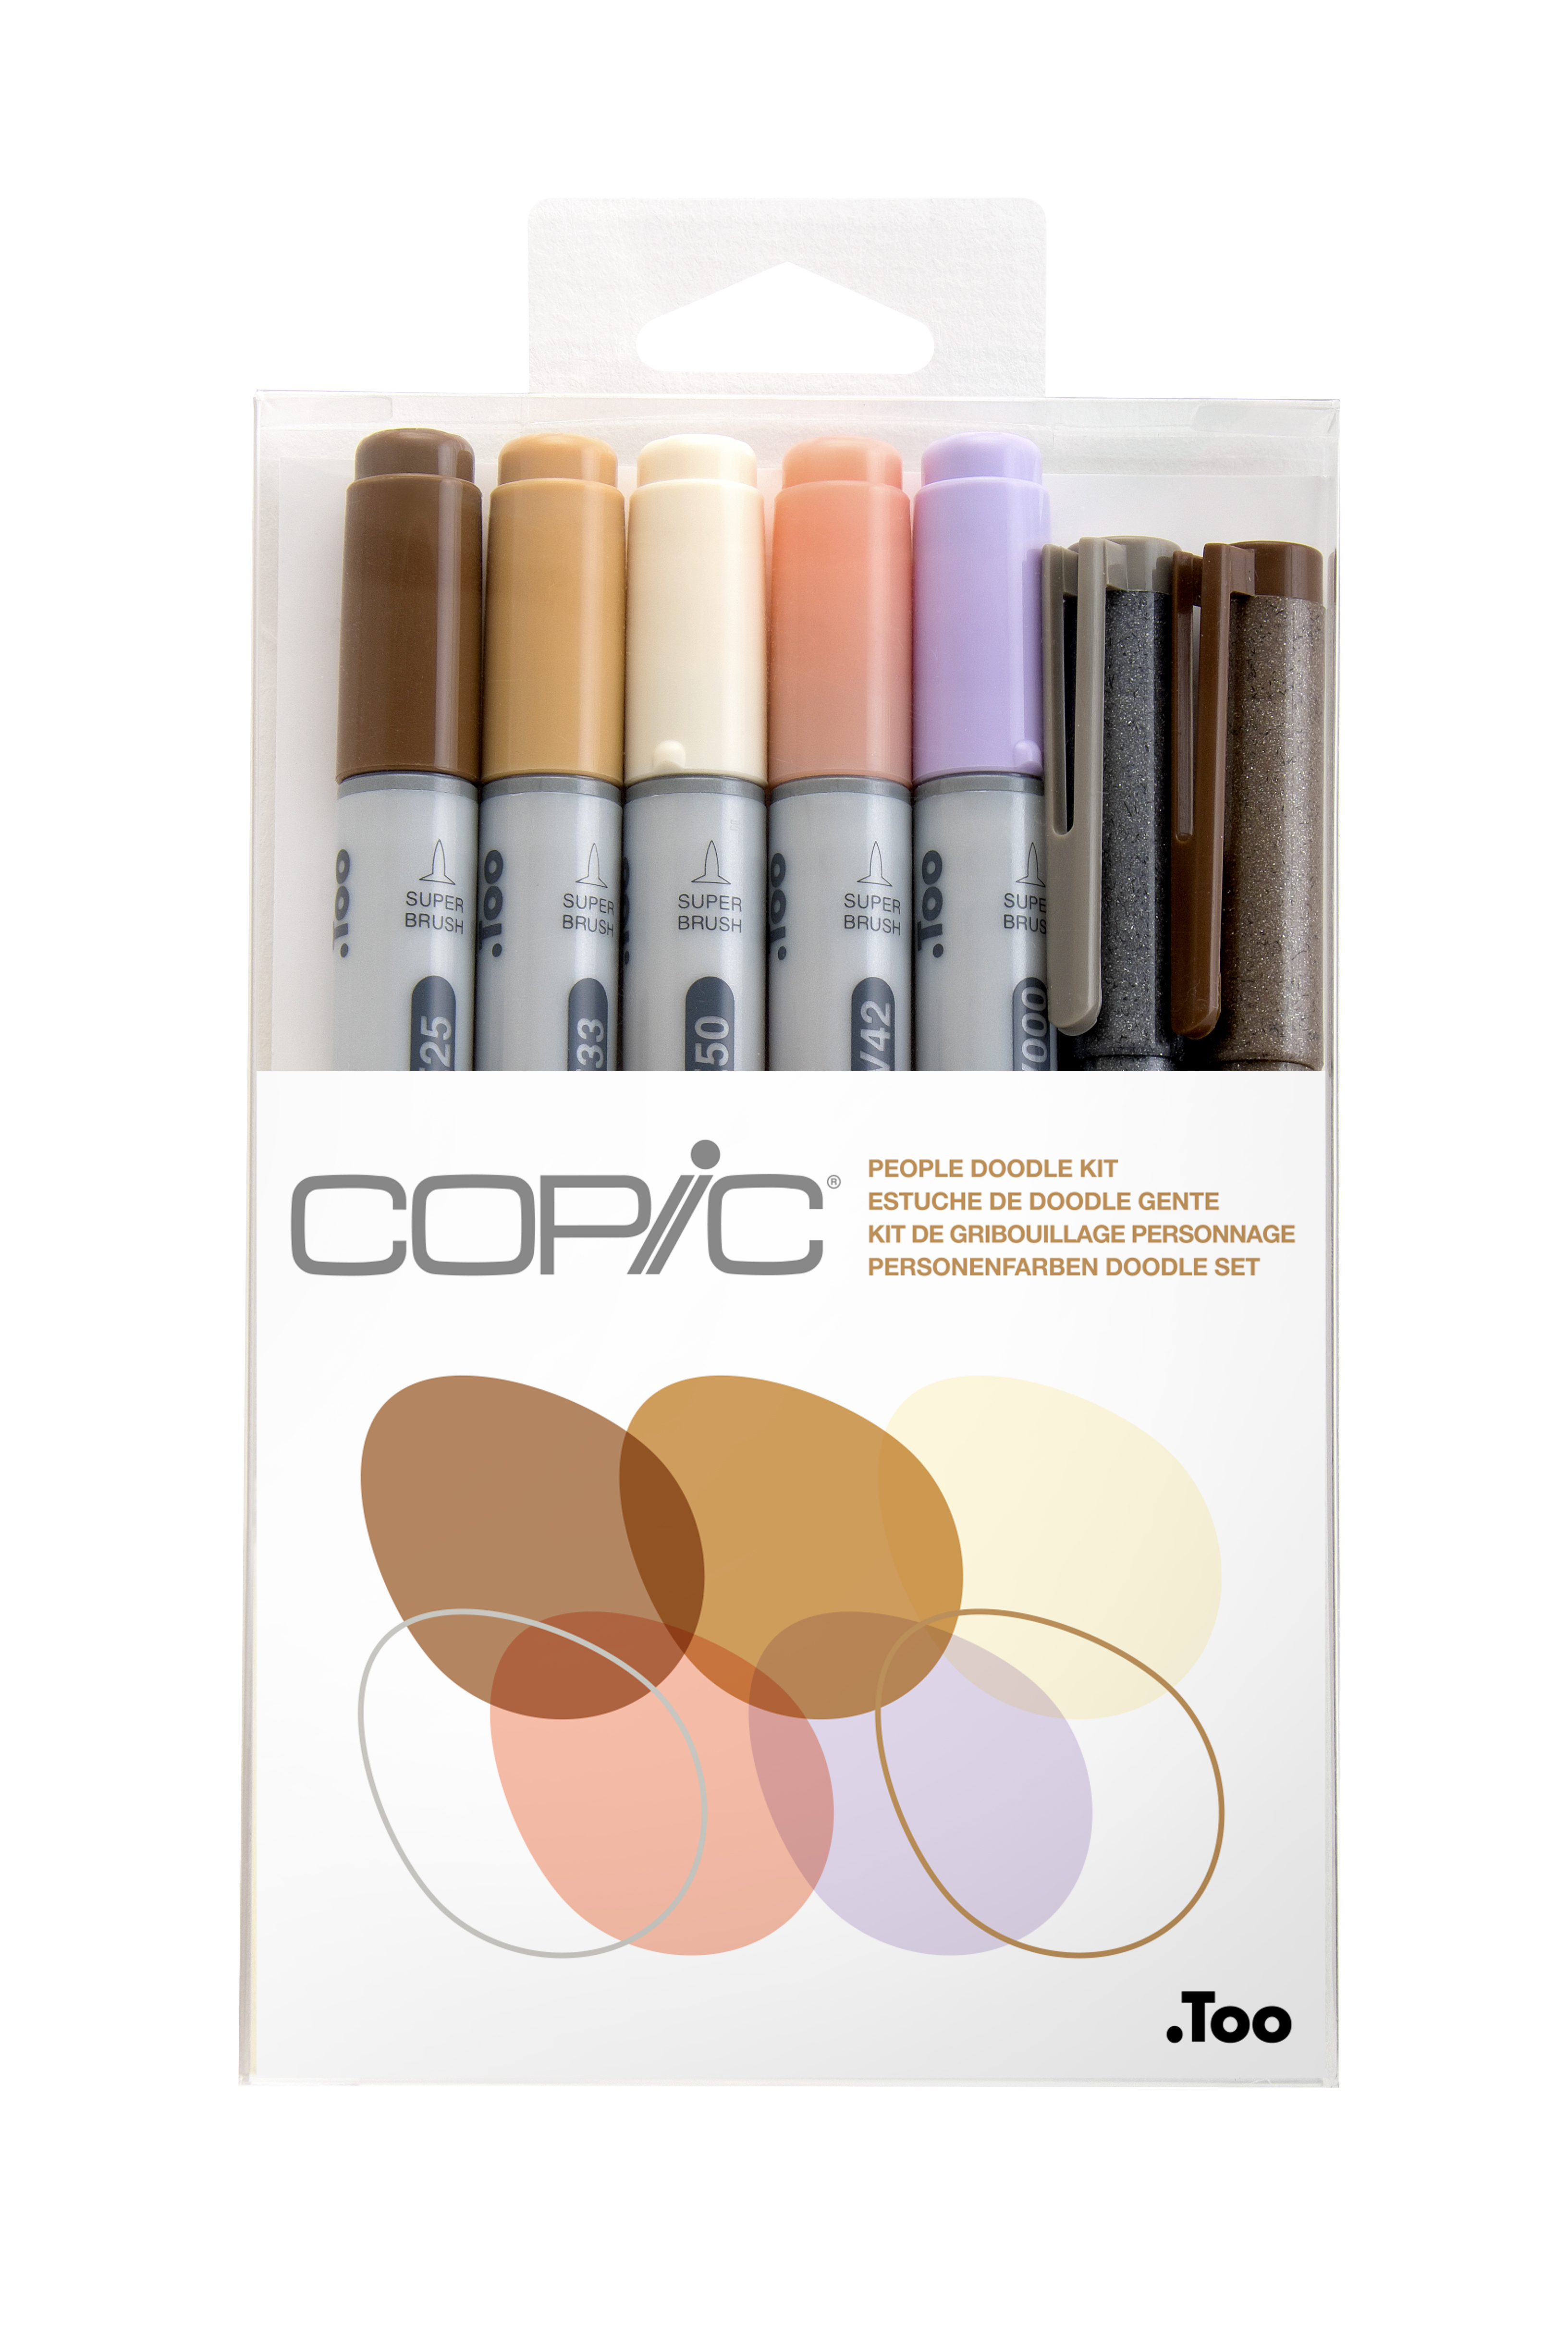 Copic Ciao Marker 7pc Doodle Kit, People